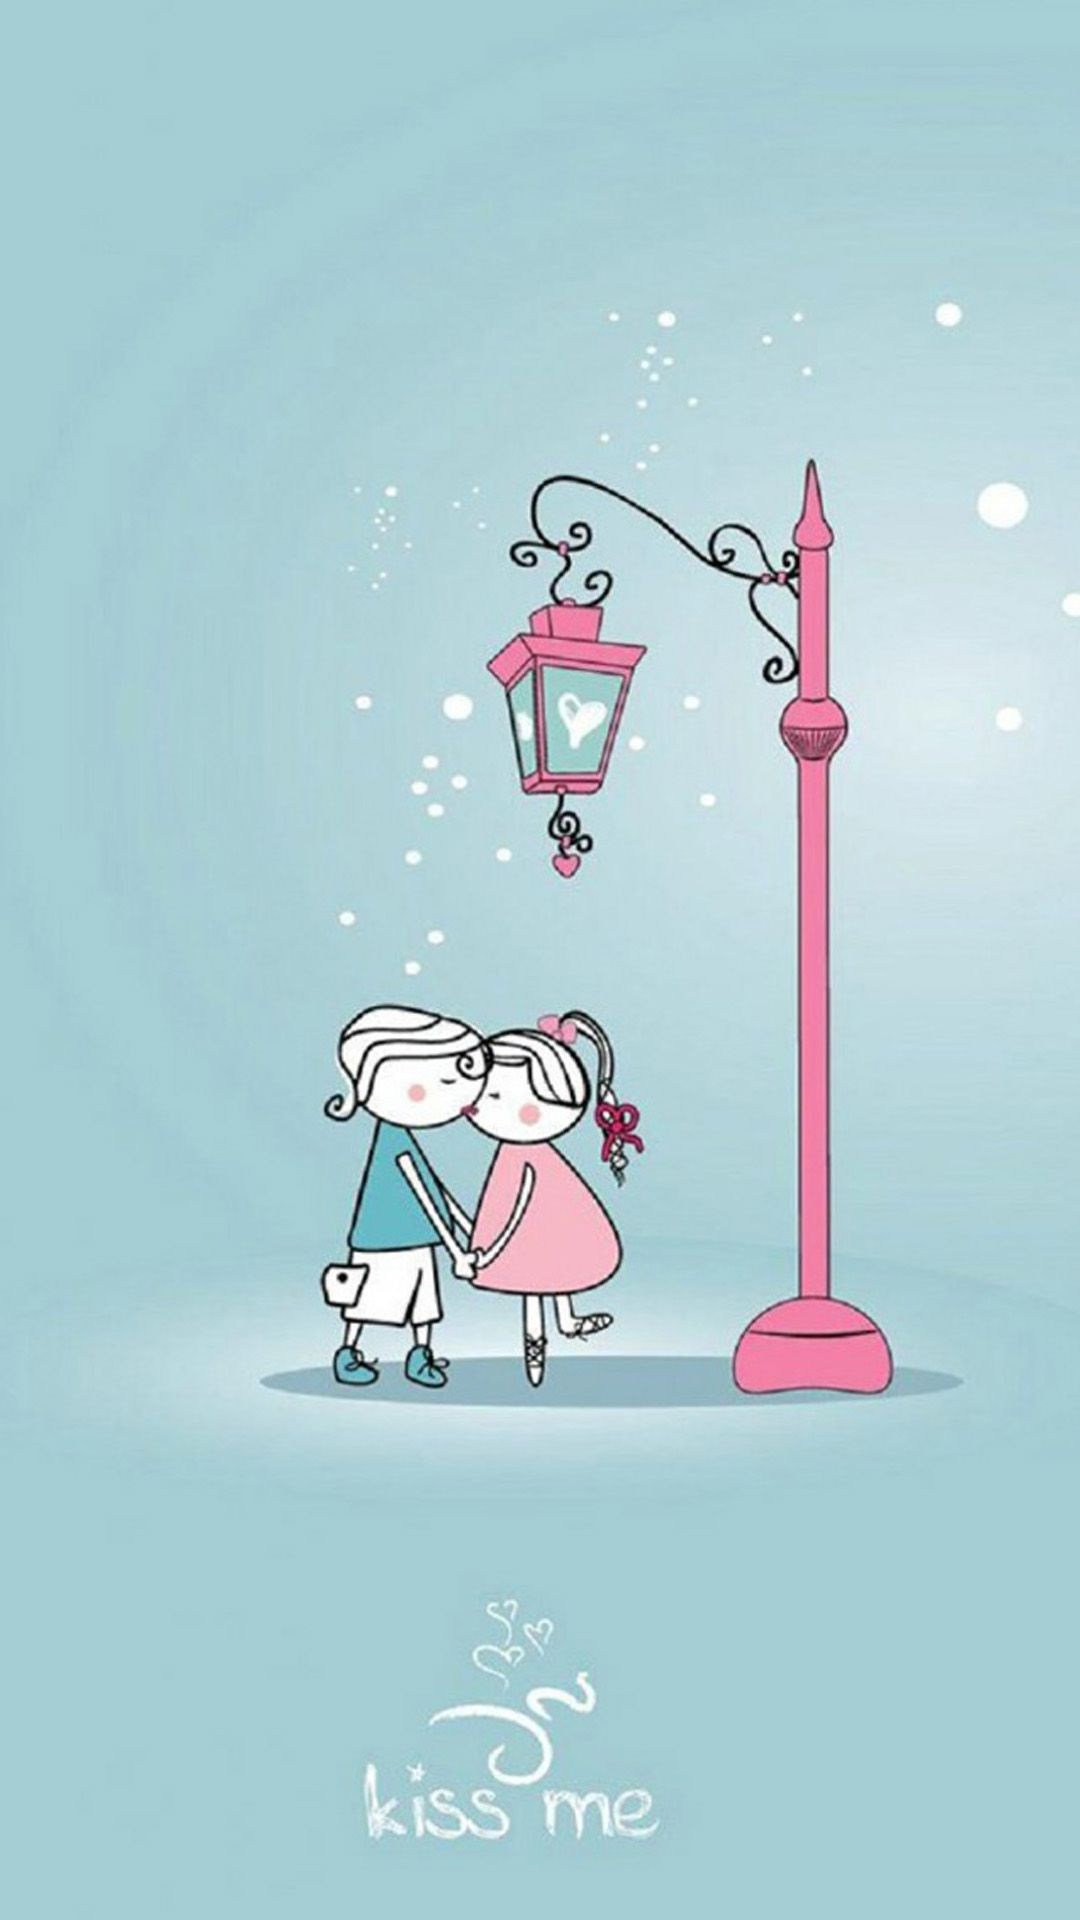 Anime Cartoon Sweet Lover Couple Kissing Winter Street Light Iphone  Wallpaper